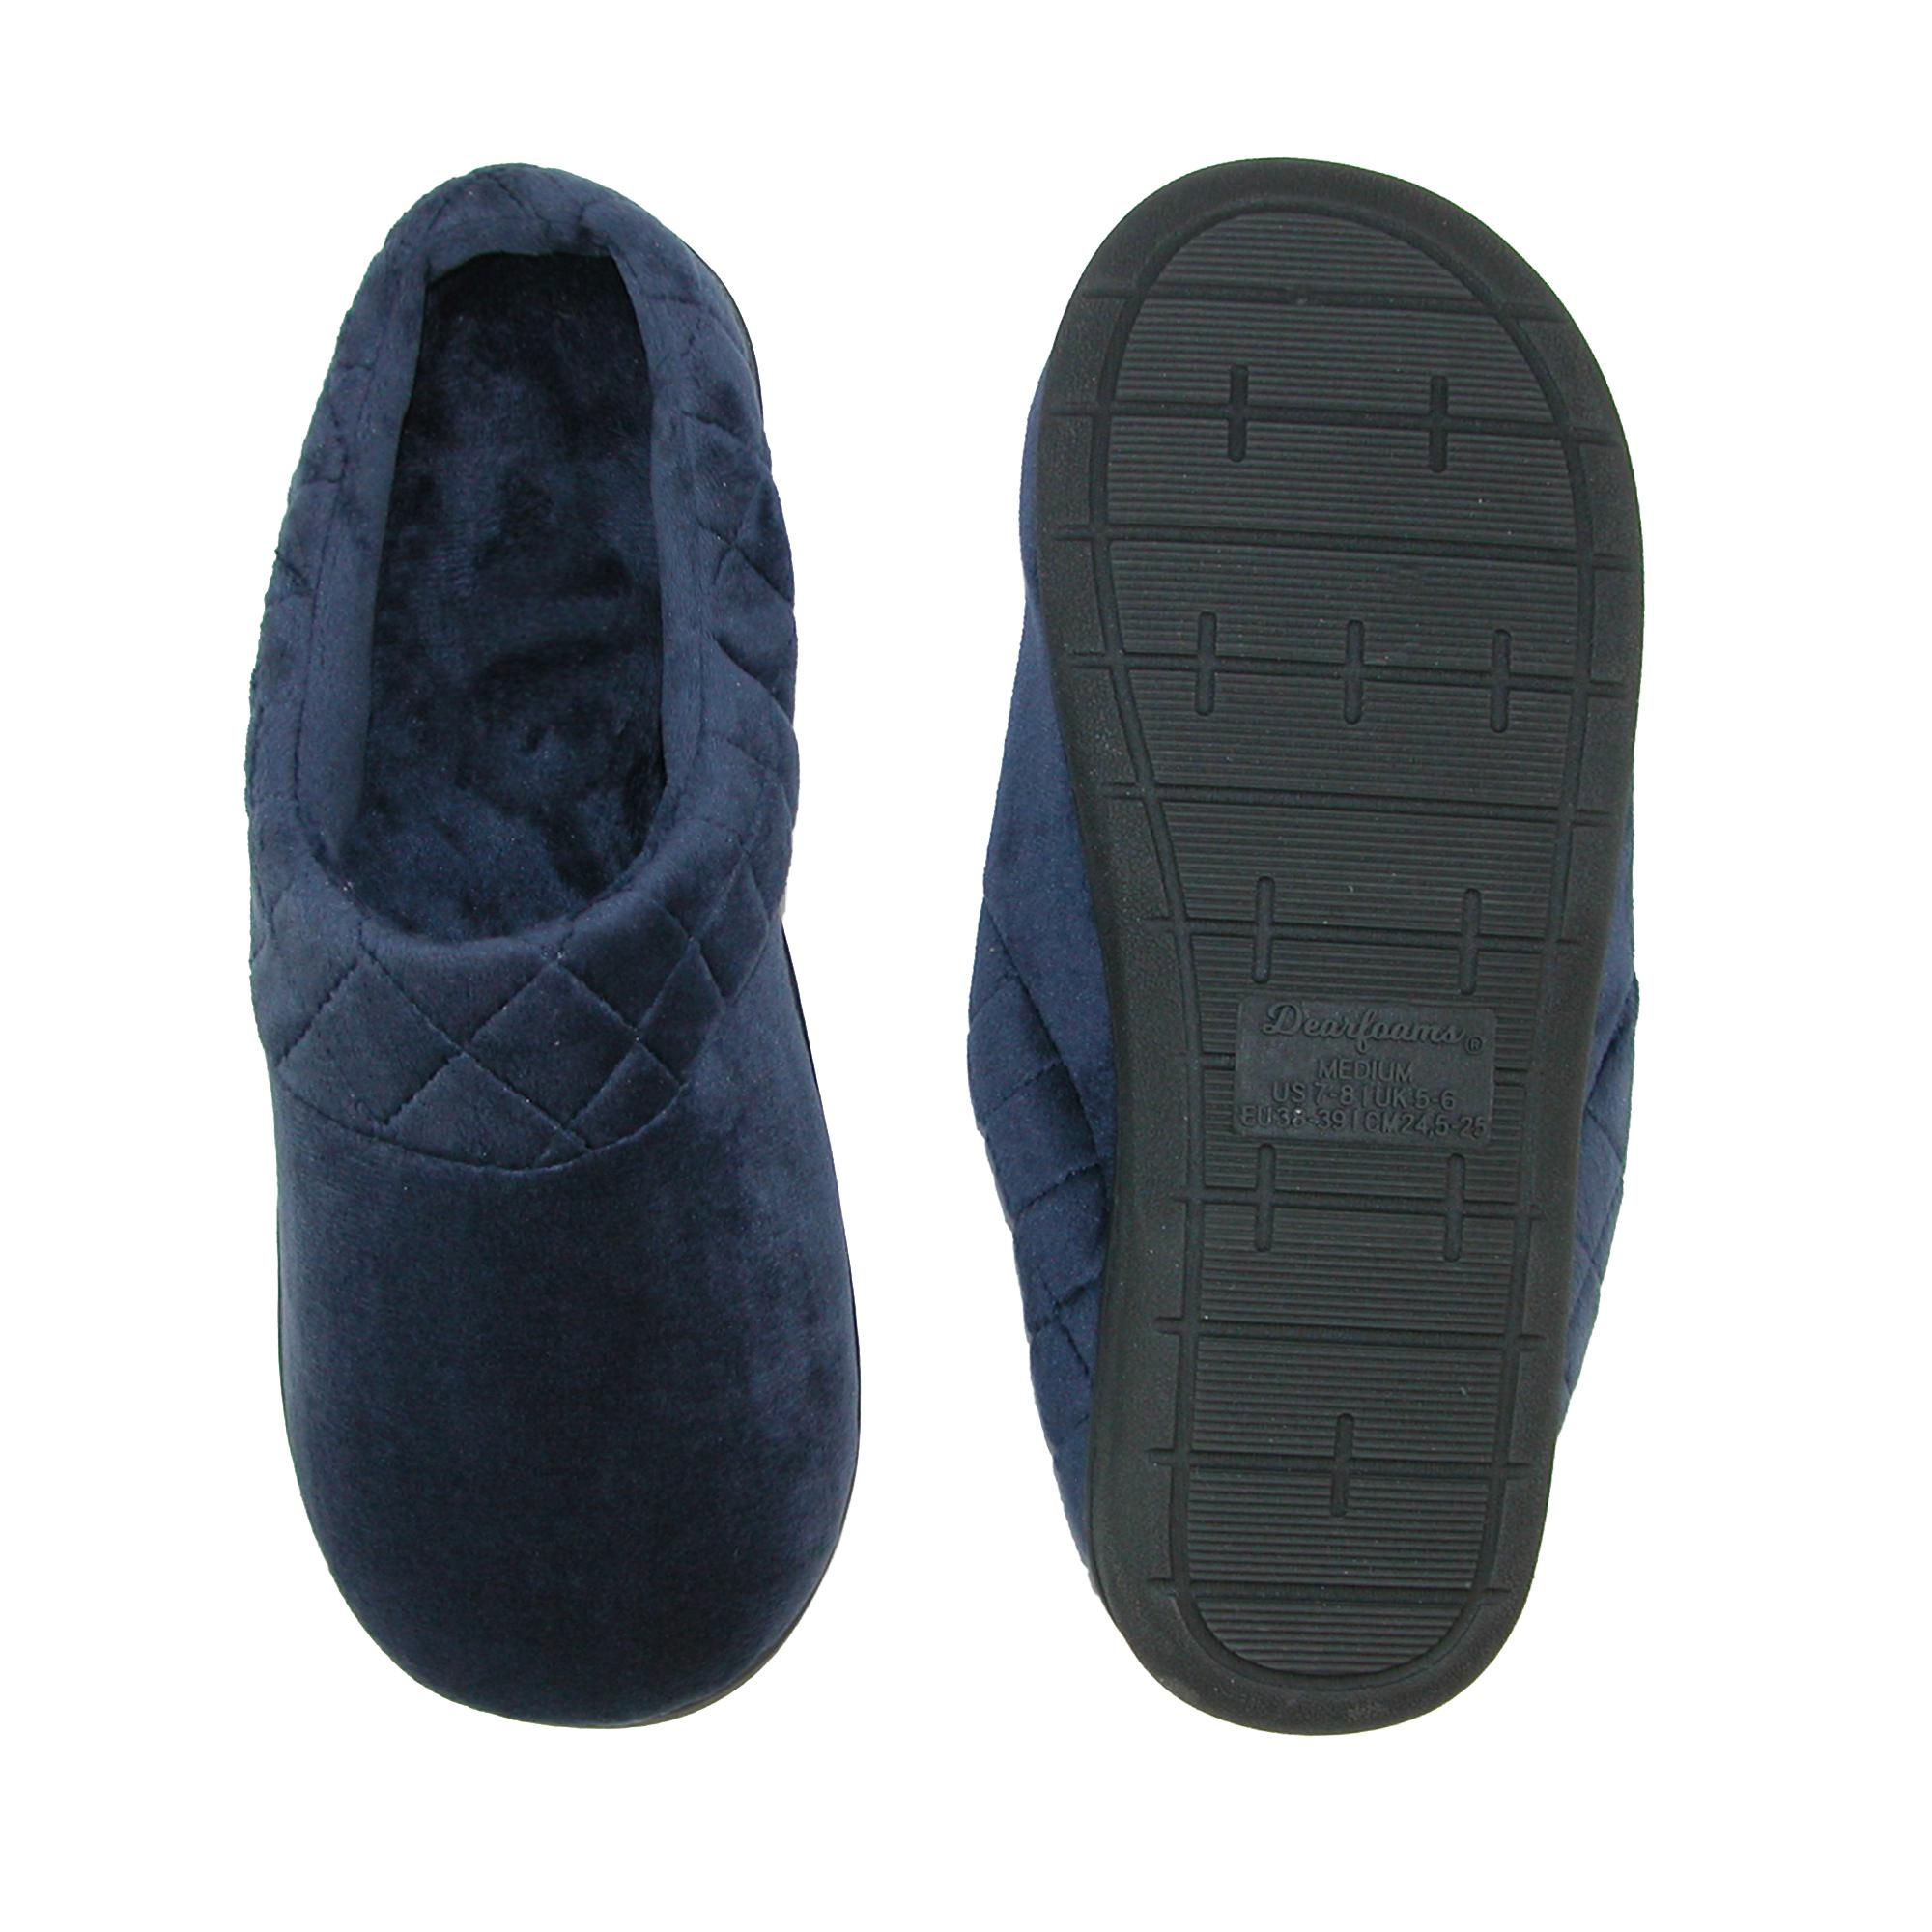 New-Dearfoams-Women-039-s-Microfiber-Velour-Clog-Slipper-with-Quilt-Detail thumbnail 11